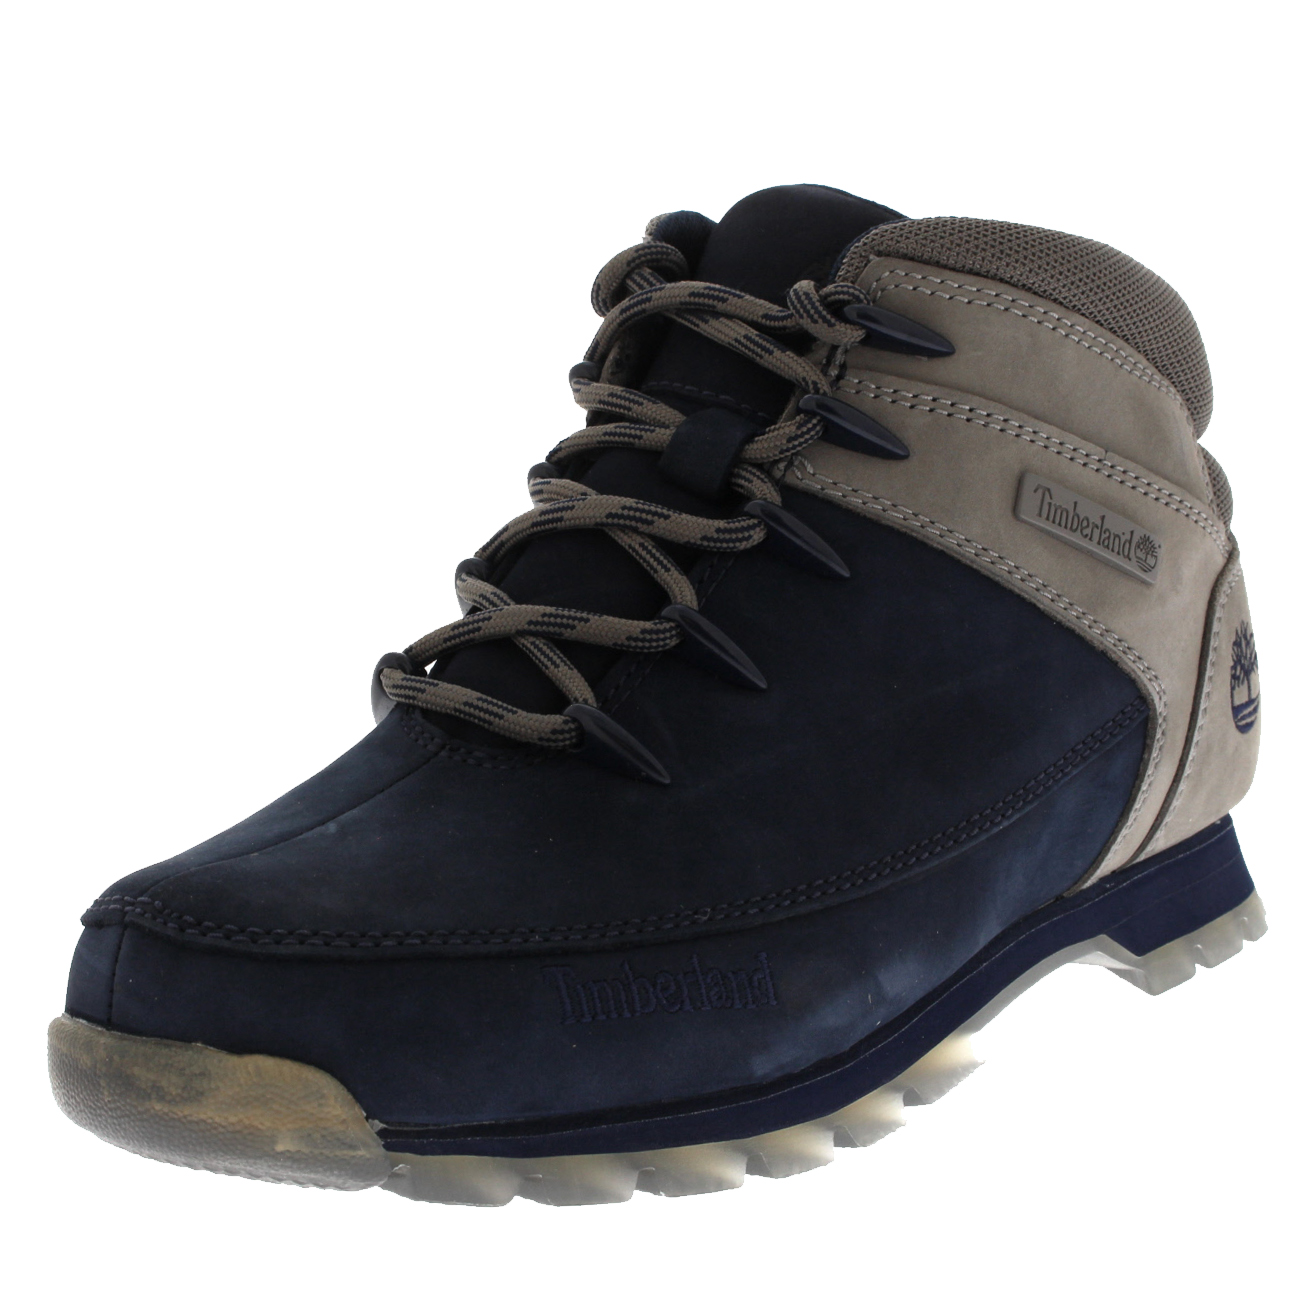 e2180c3bbdb Details about Men Timberland Euro Sprint Hiker Black Iris Hiking Walking  Ankle Boots UK 6-12